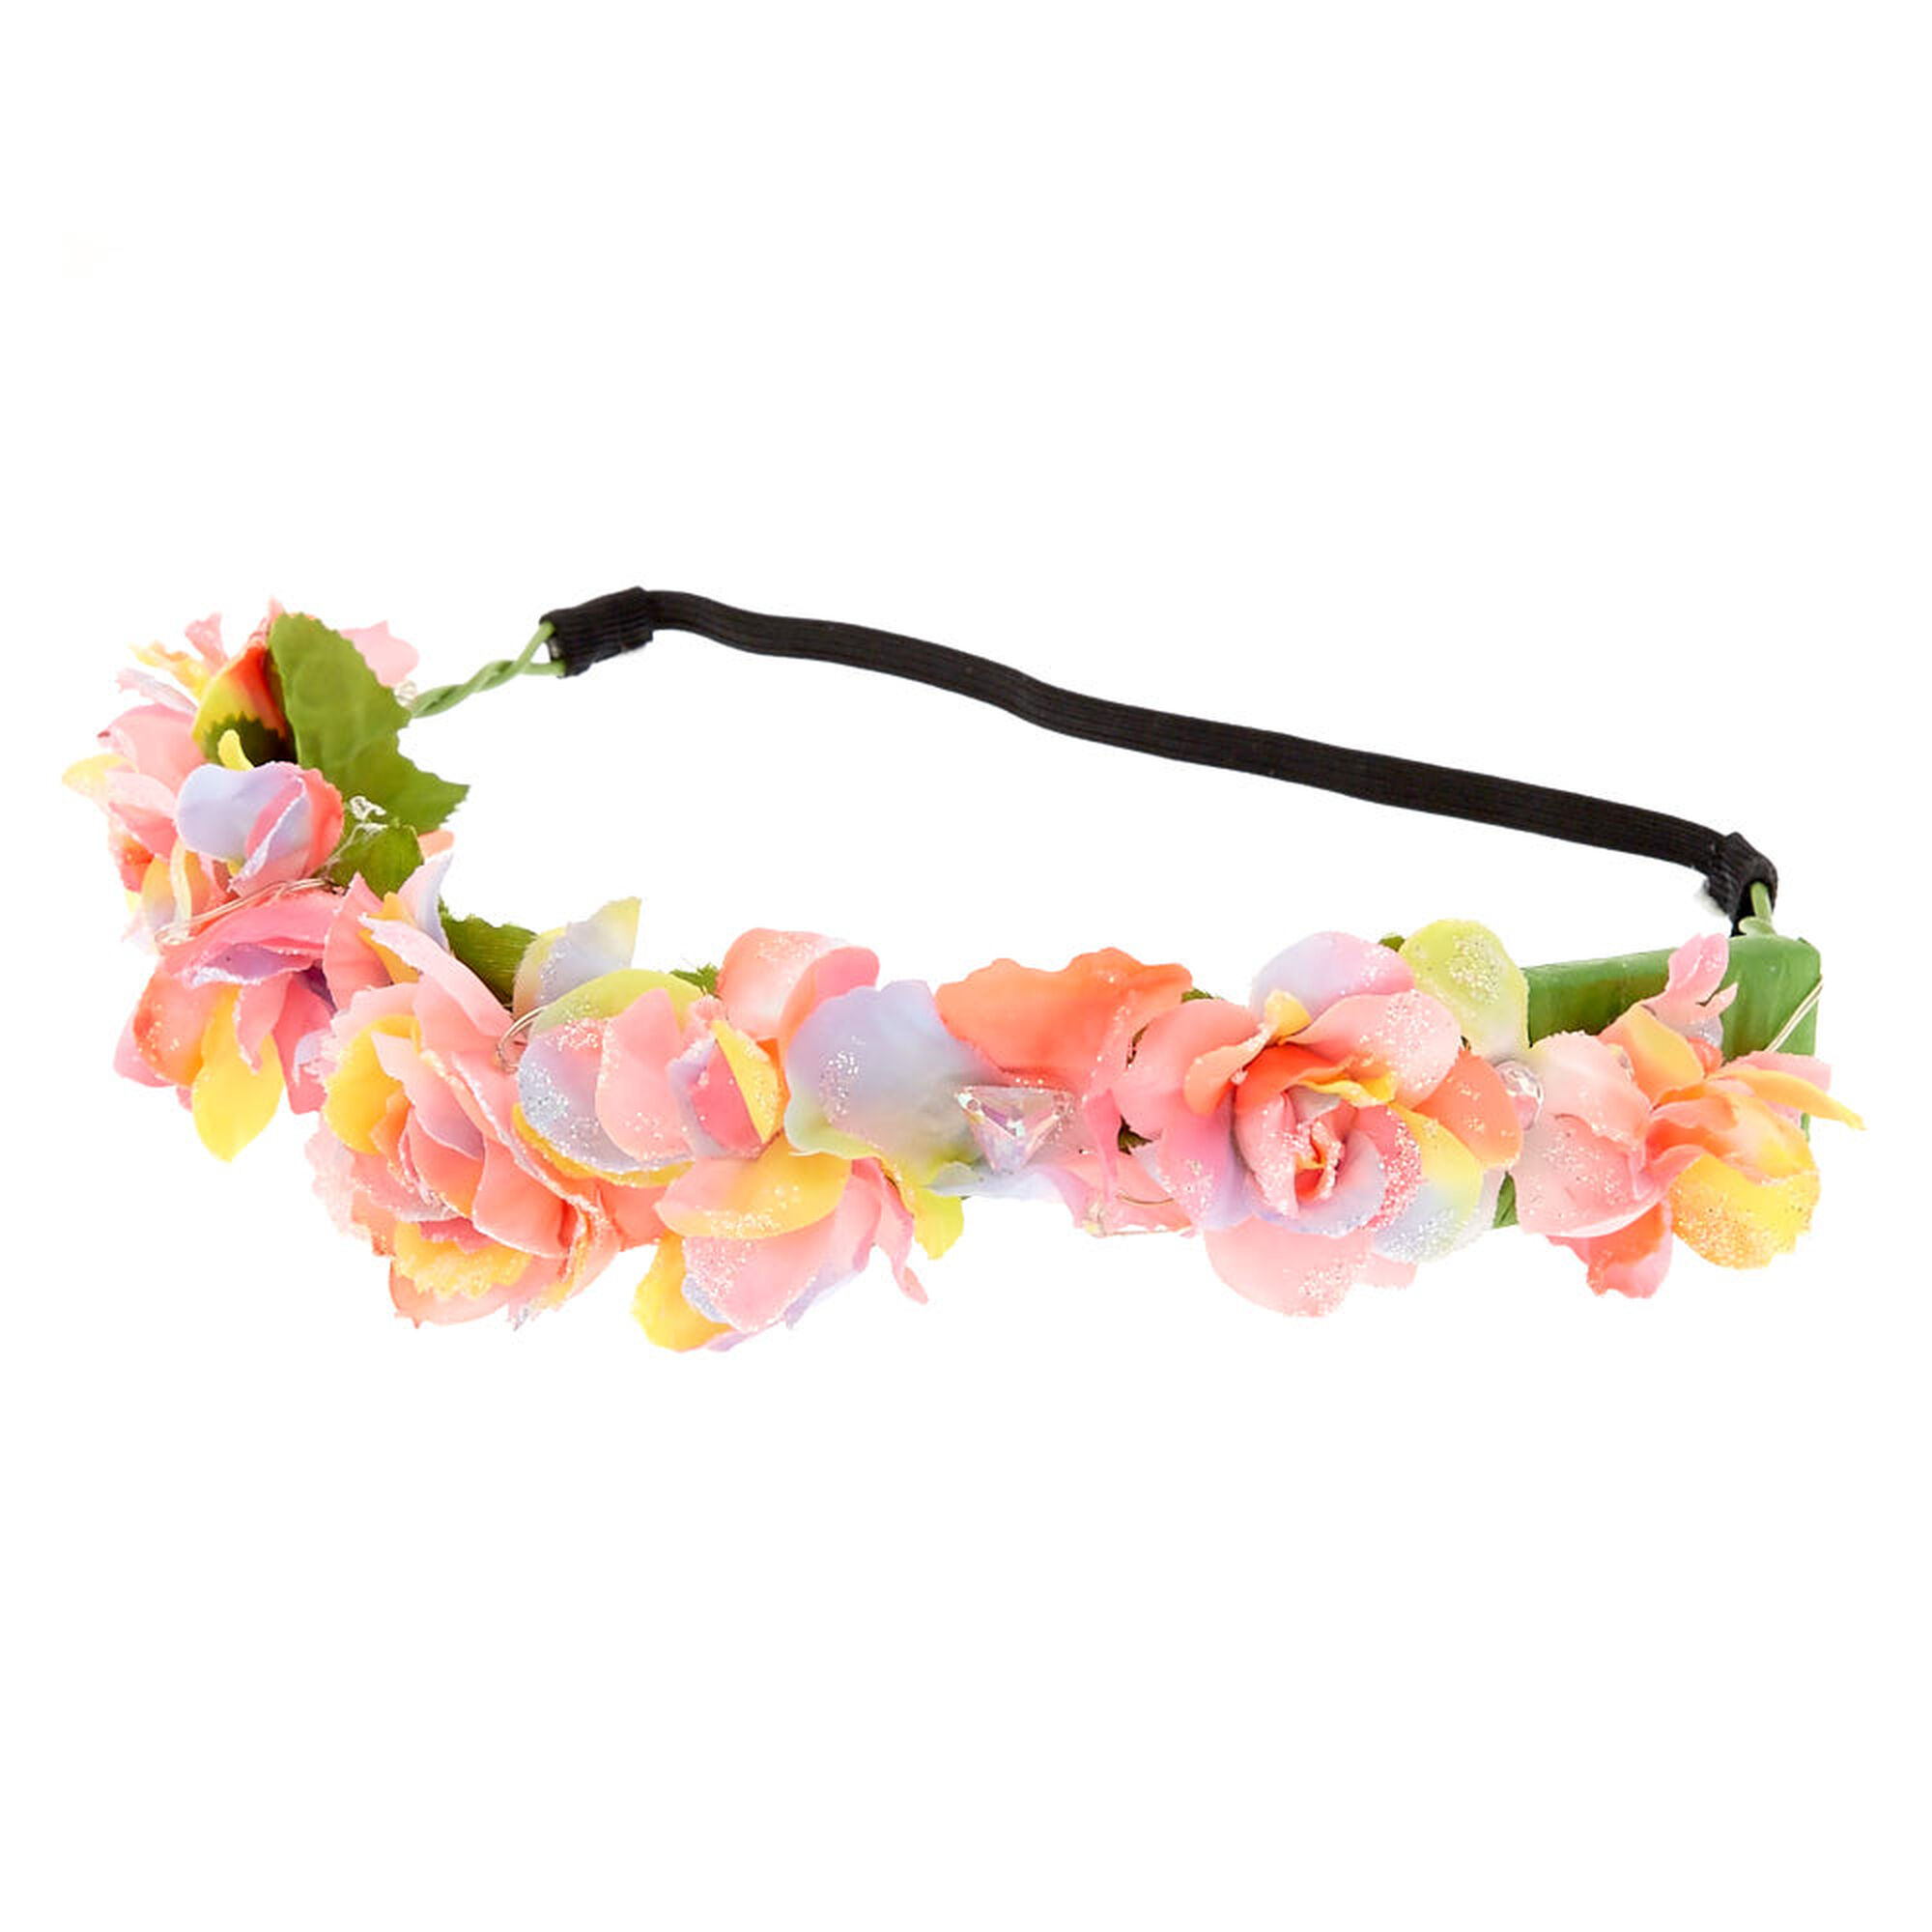 Light up rainbow flower crown claires light up rainbow flower crown izmirmasajfo